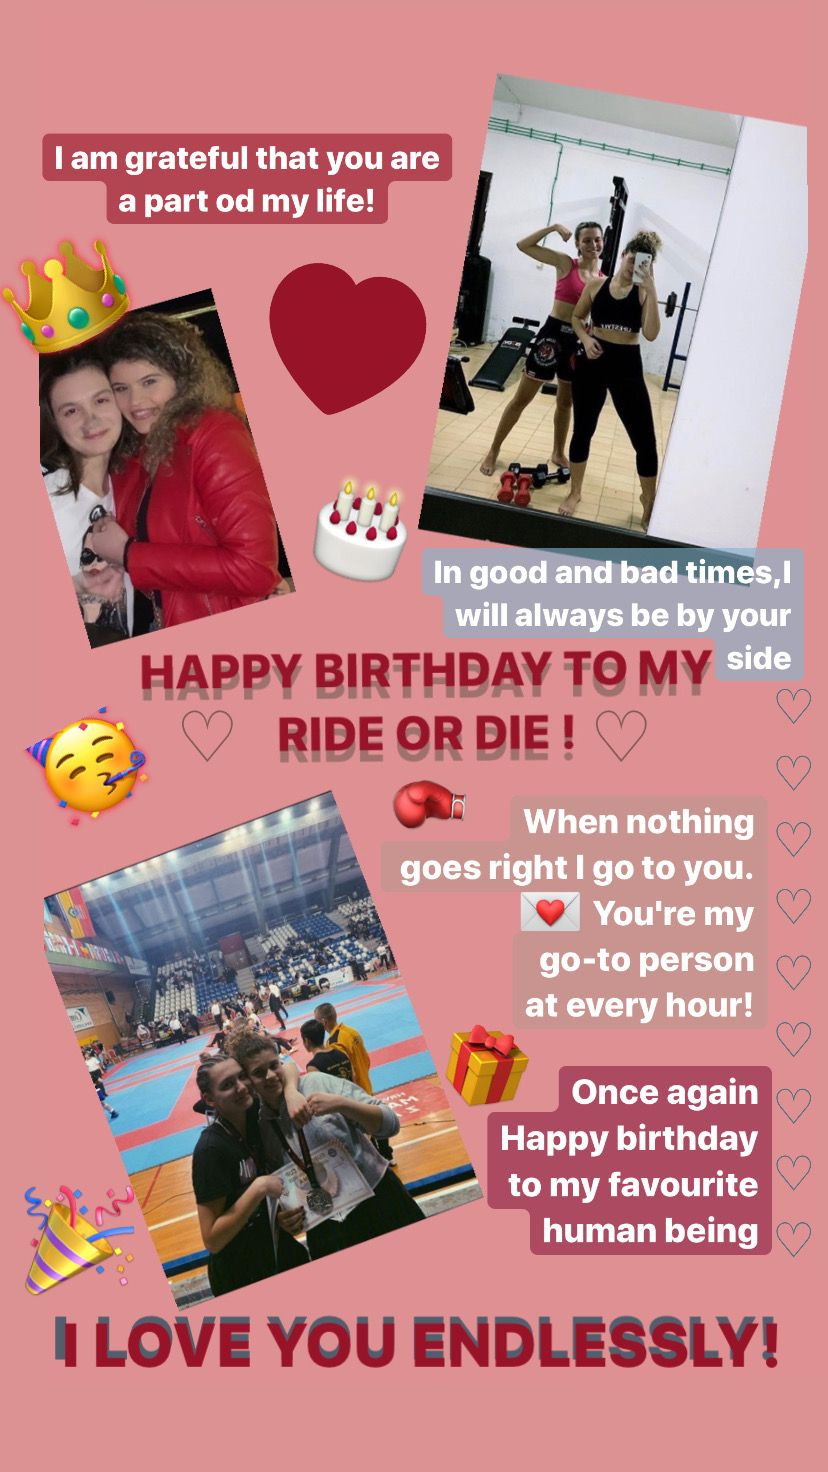 Instagram story ideas in 2020 Friend birthday quotes